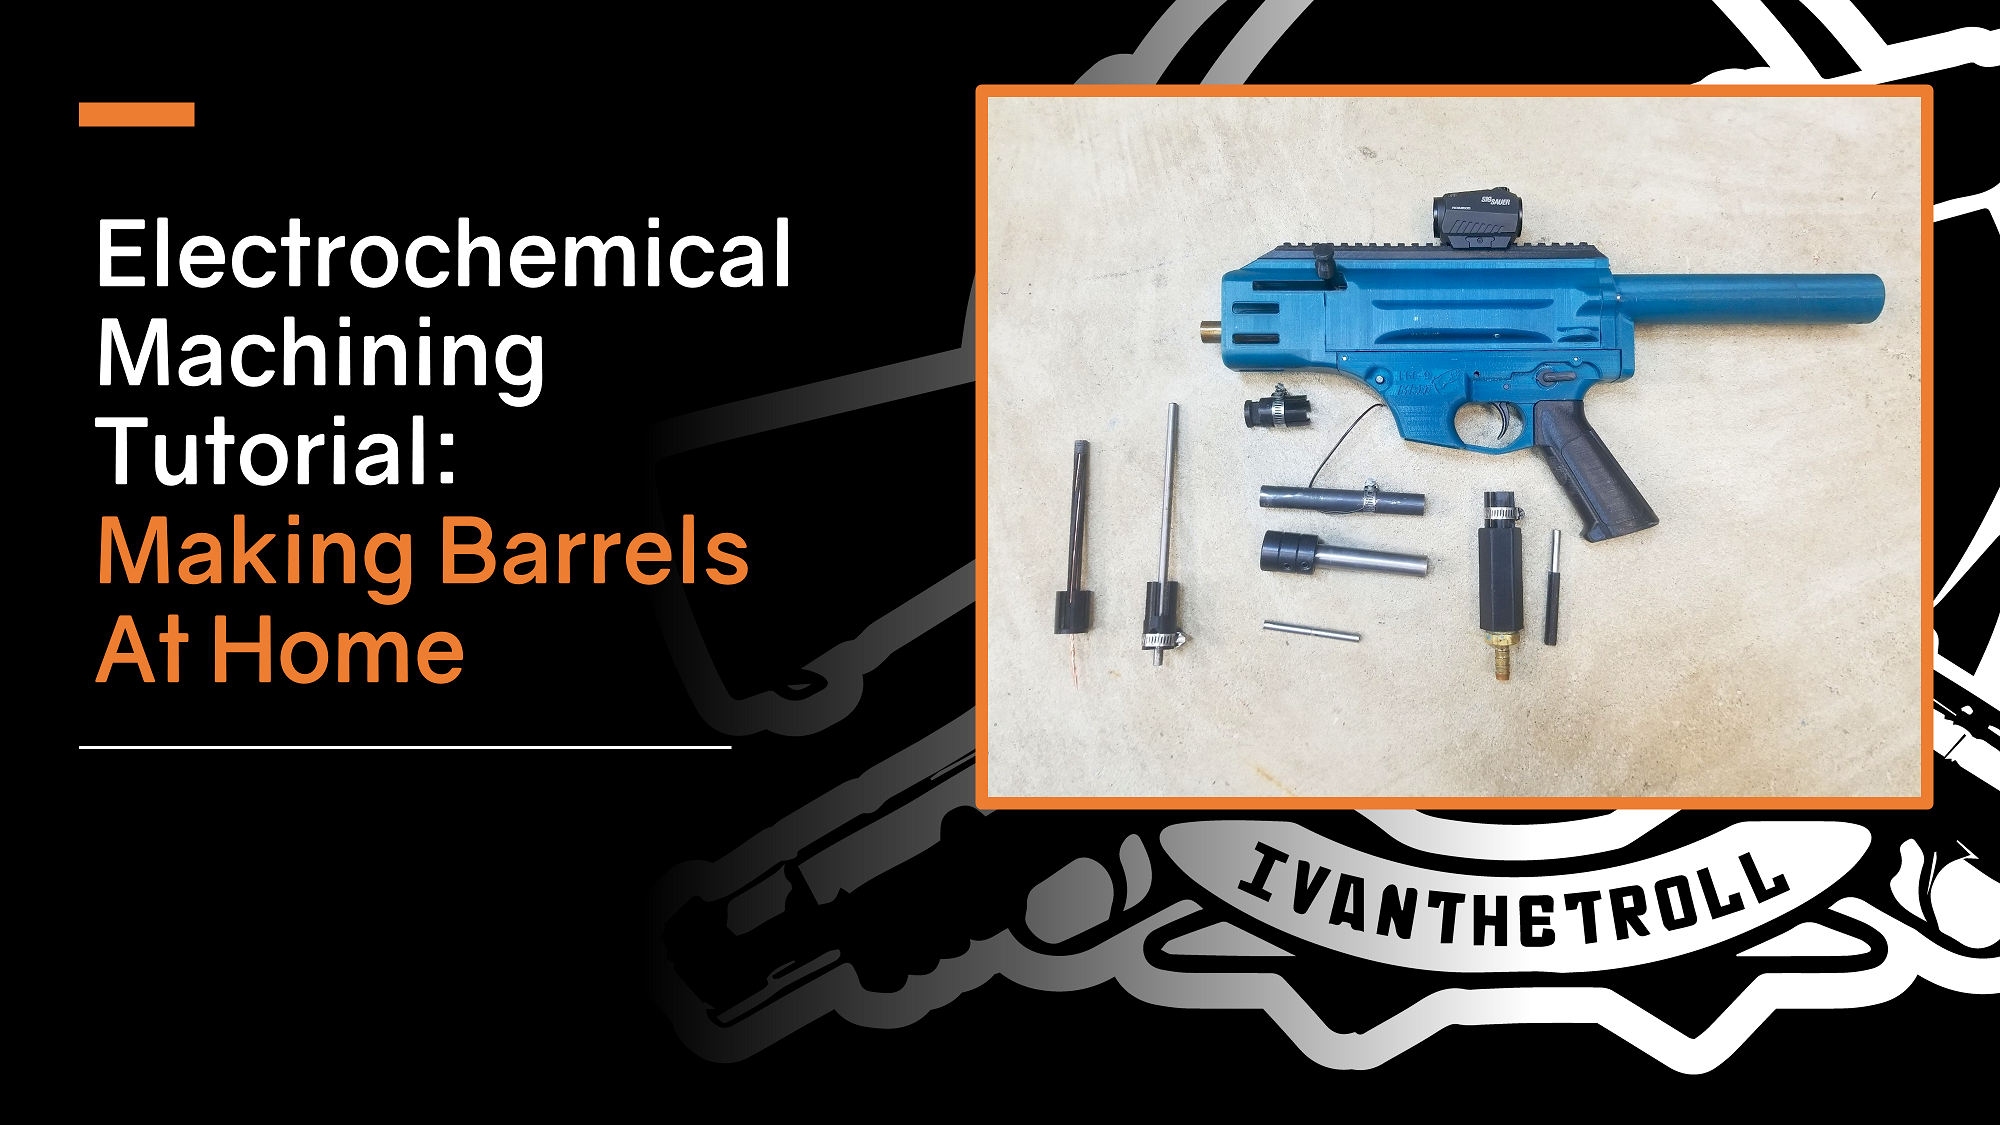 Do-It-Yourself Electrochemical Machining v2.0 Barrelmaking Package